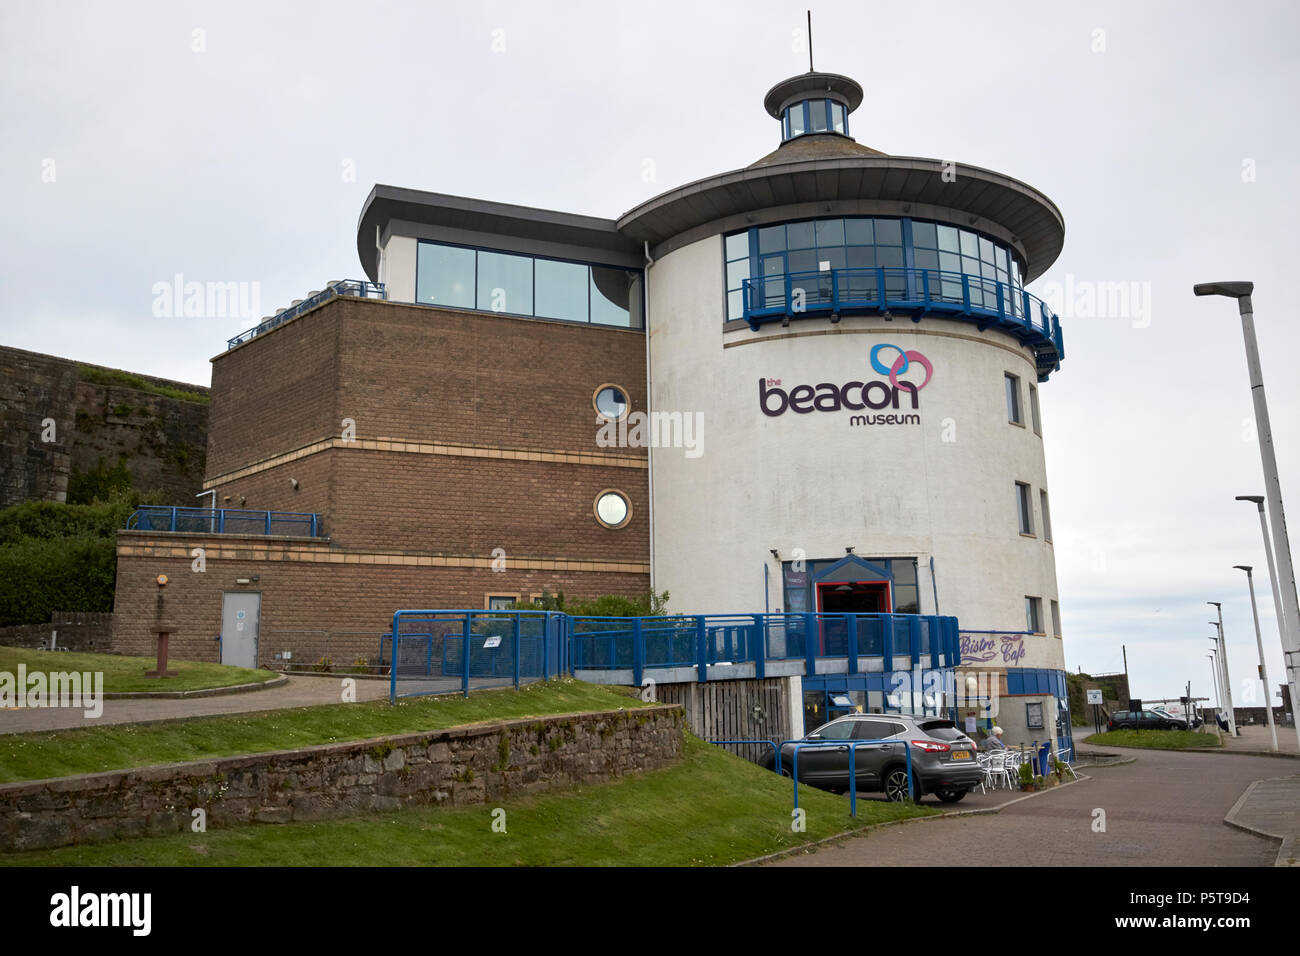 The beacon museum Whitehaven Cumbria England UK - Stock Image